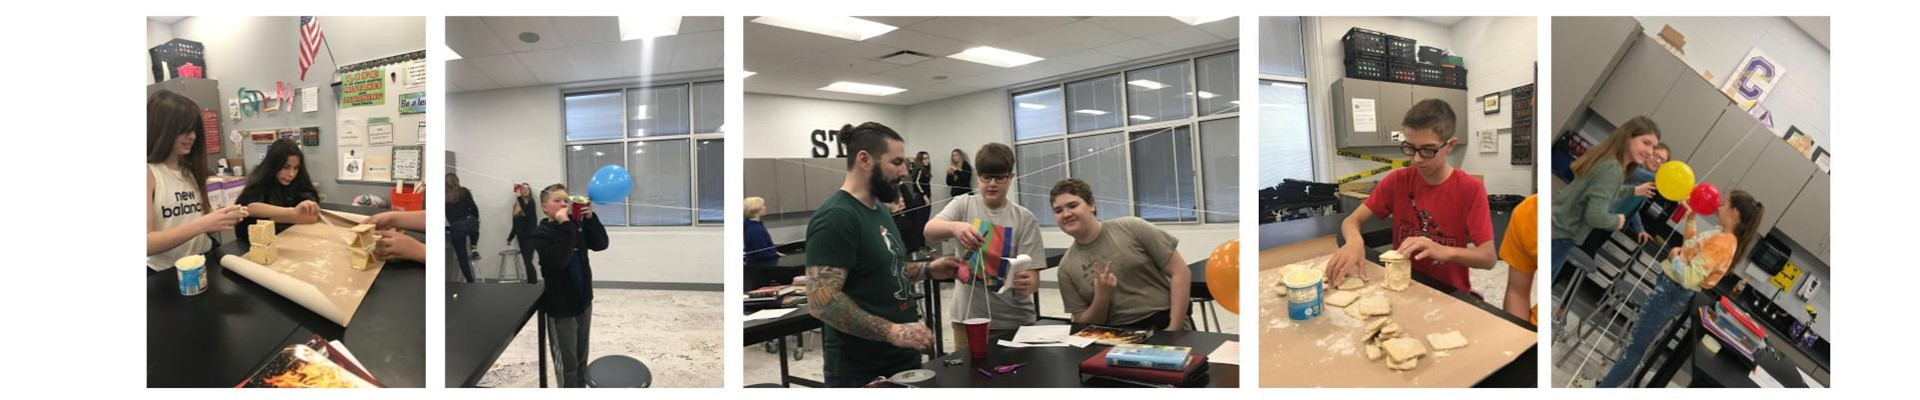 5 pictures from Cookie Day in 7th grade, students designing cookie towers and other STEM projects